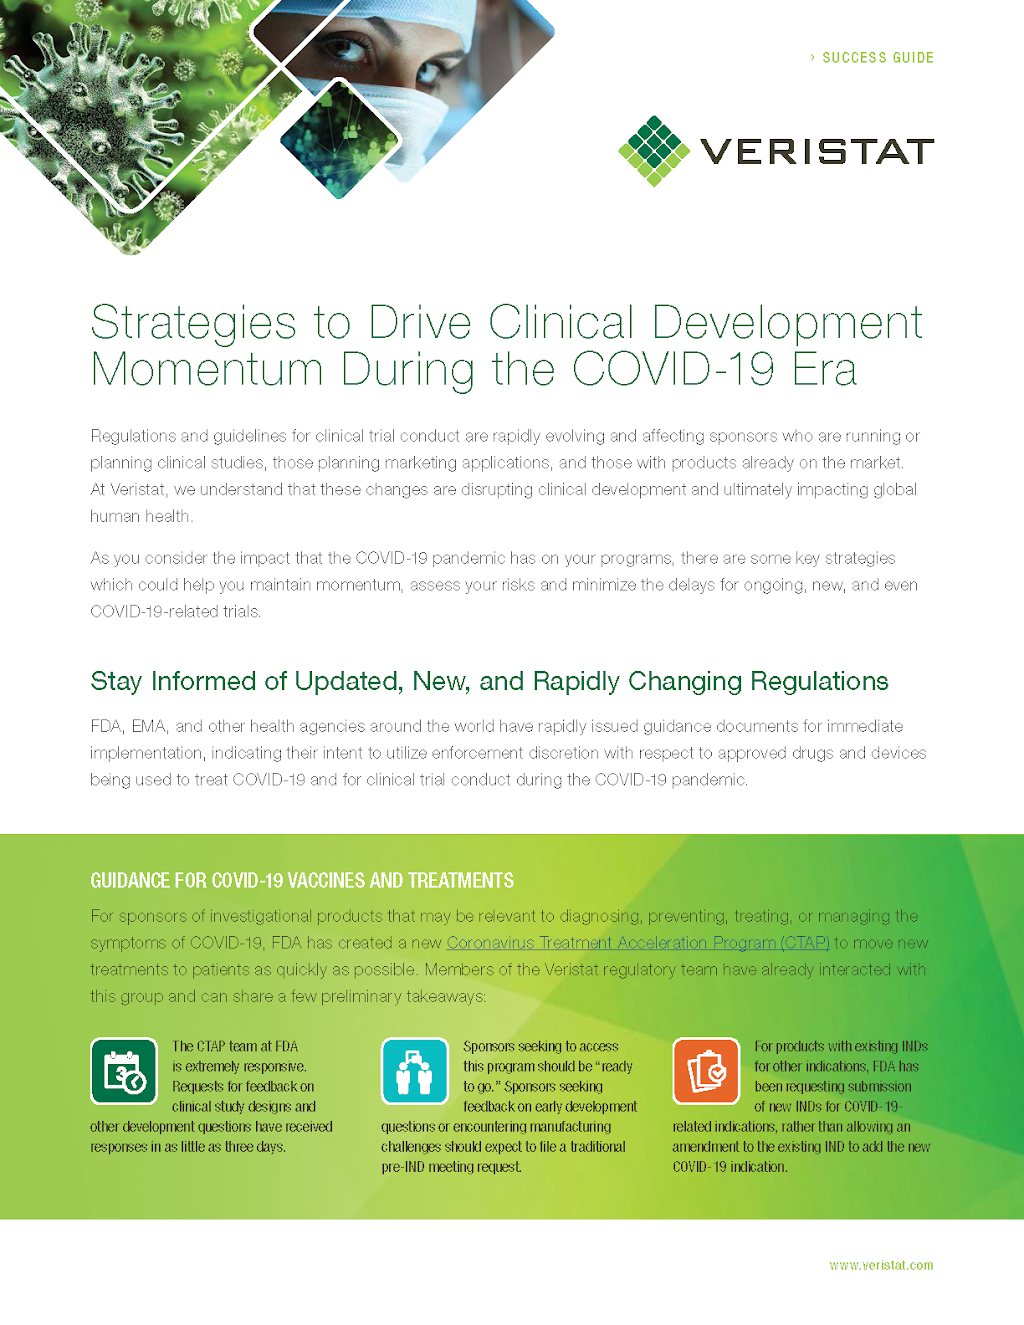 Success Strategies to Drive Clinical Development Momentum During COVID-19